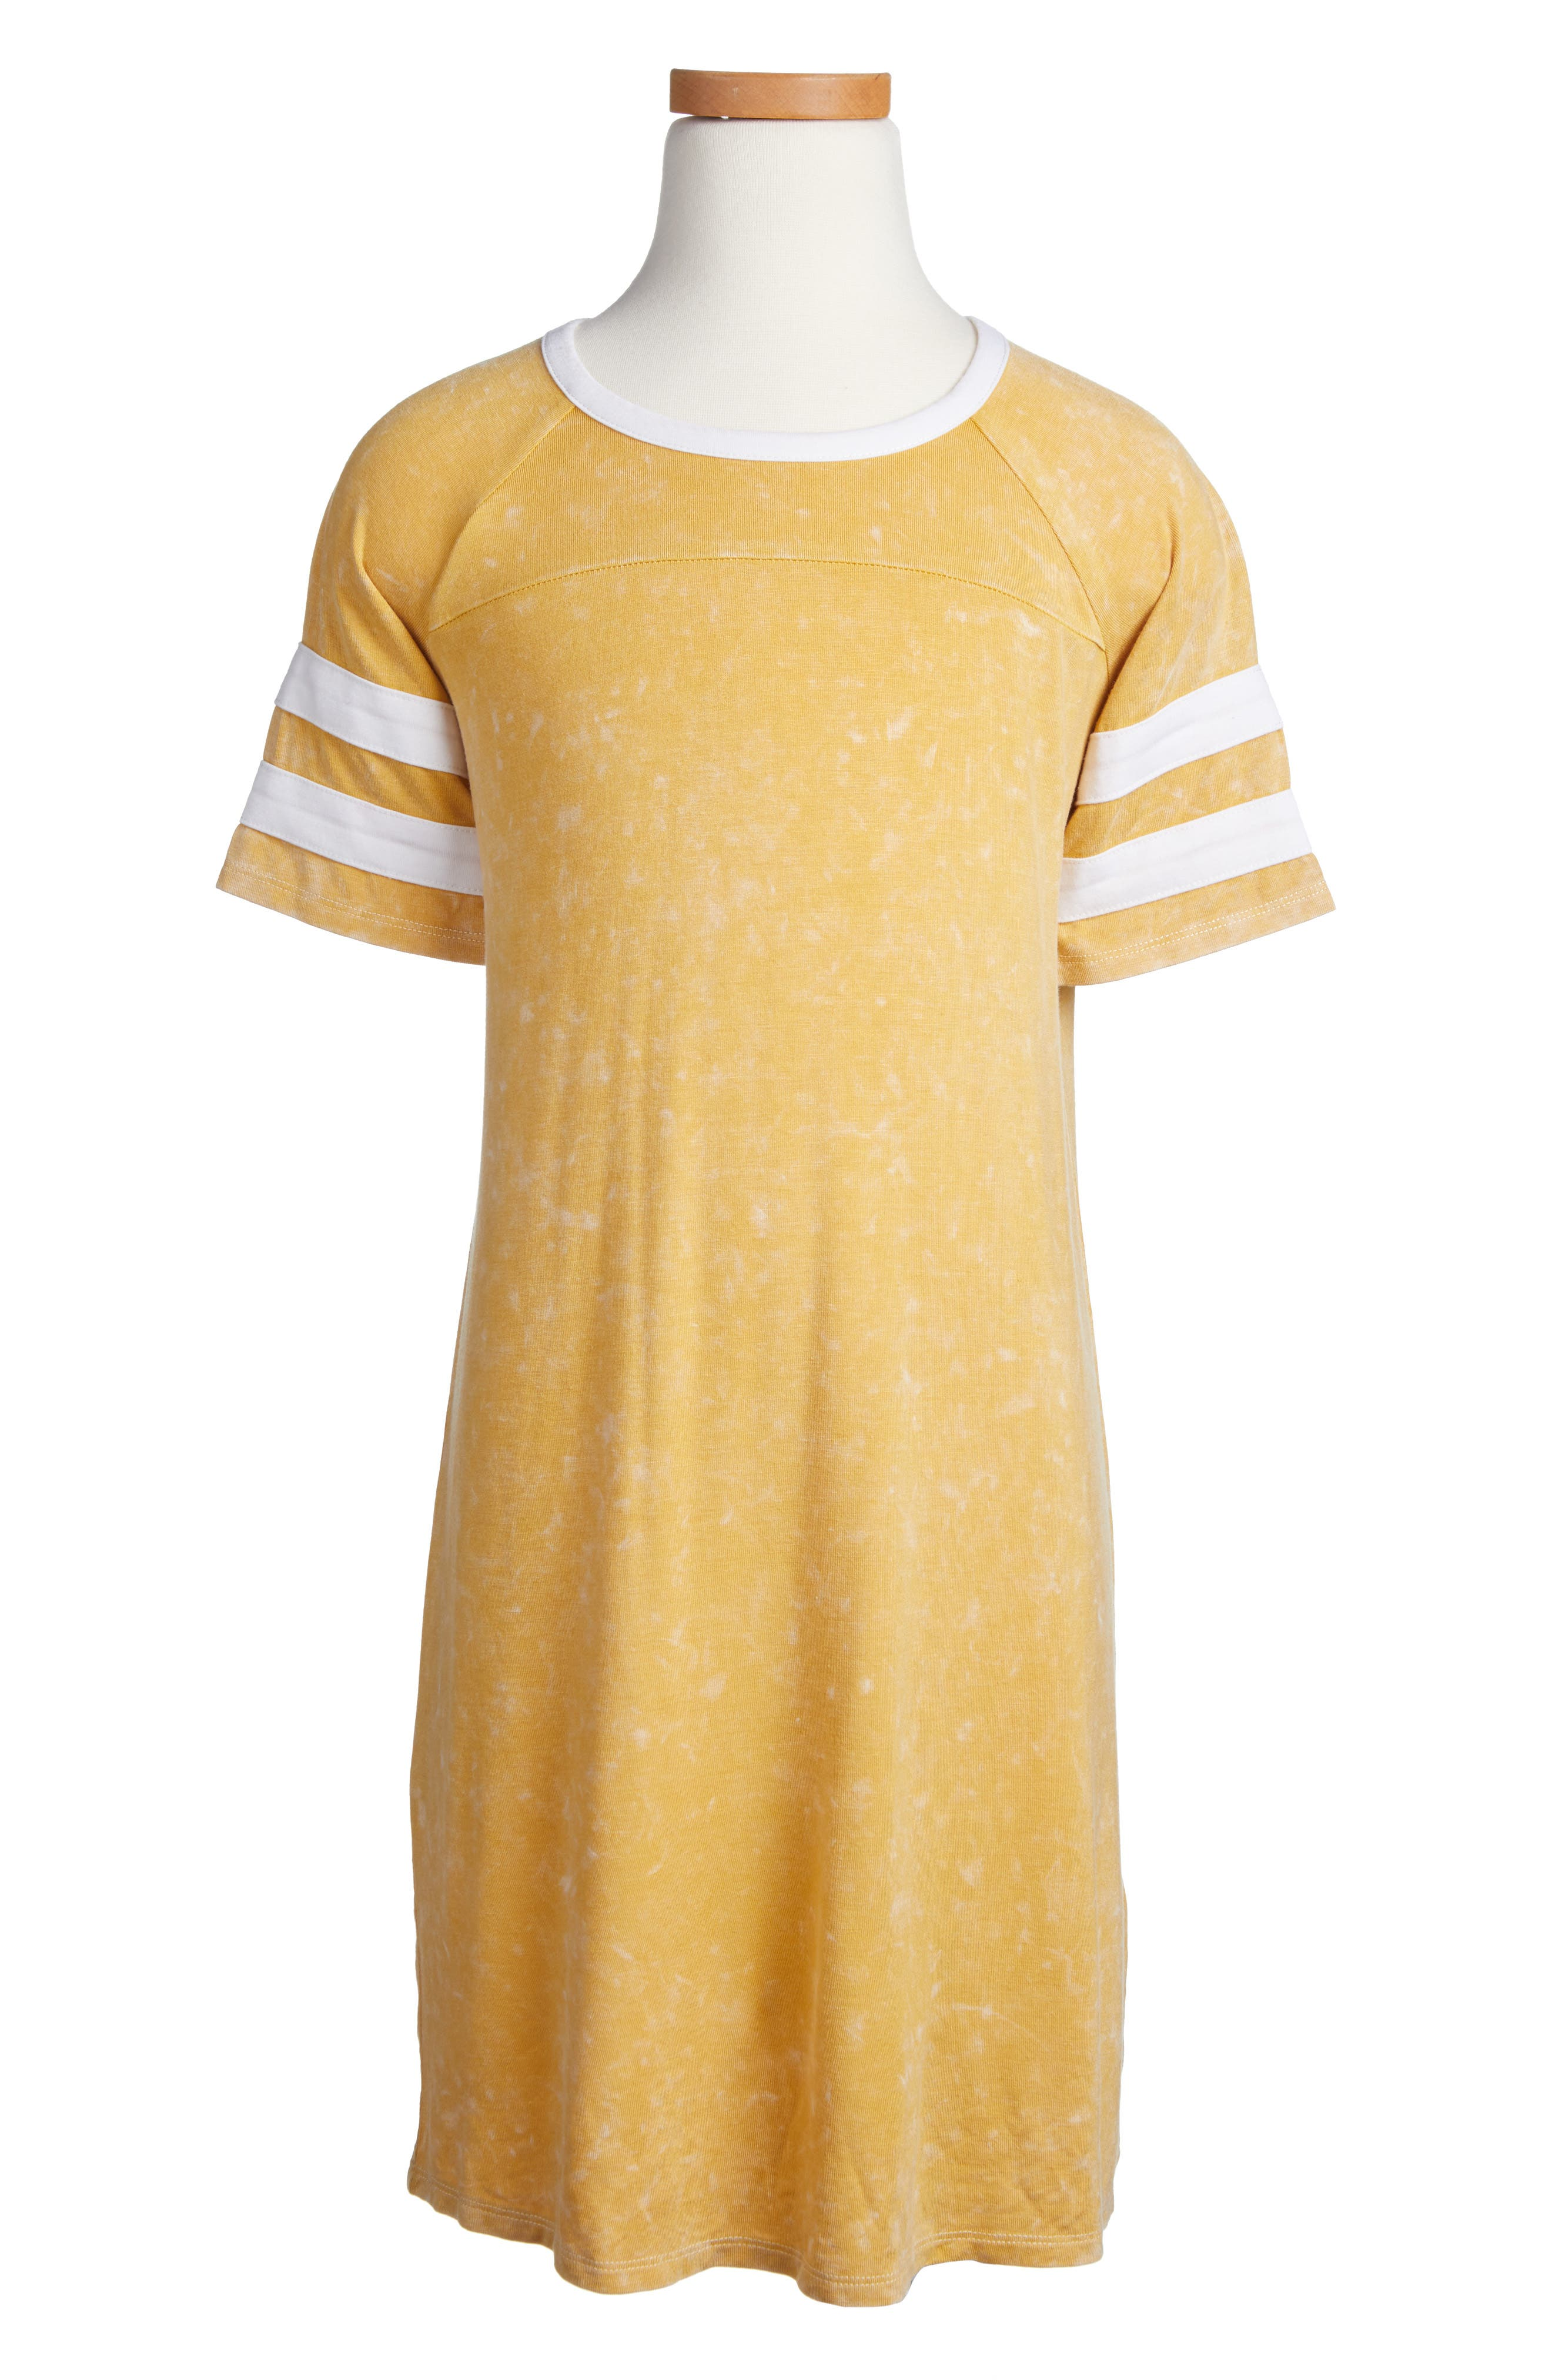 Alternate Image 1 Selected - Love, Fire Mineral Wash T-Shirt Dress (Big Girls)